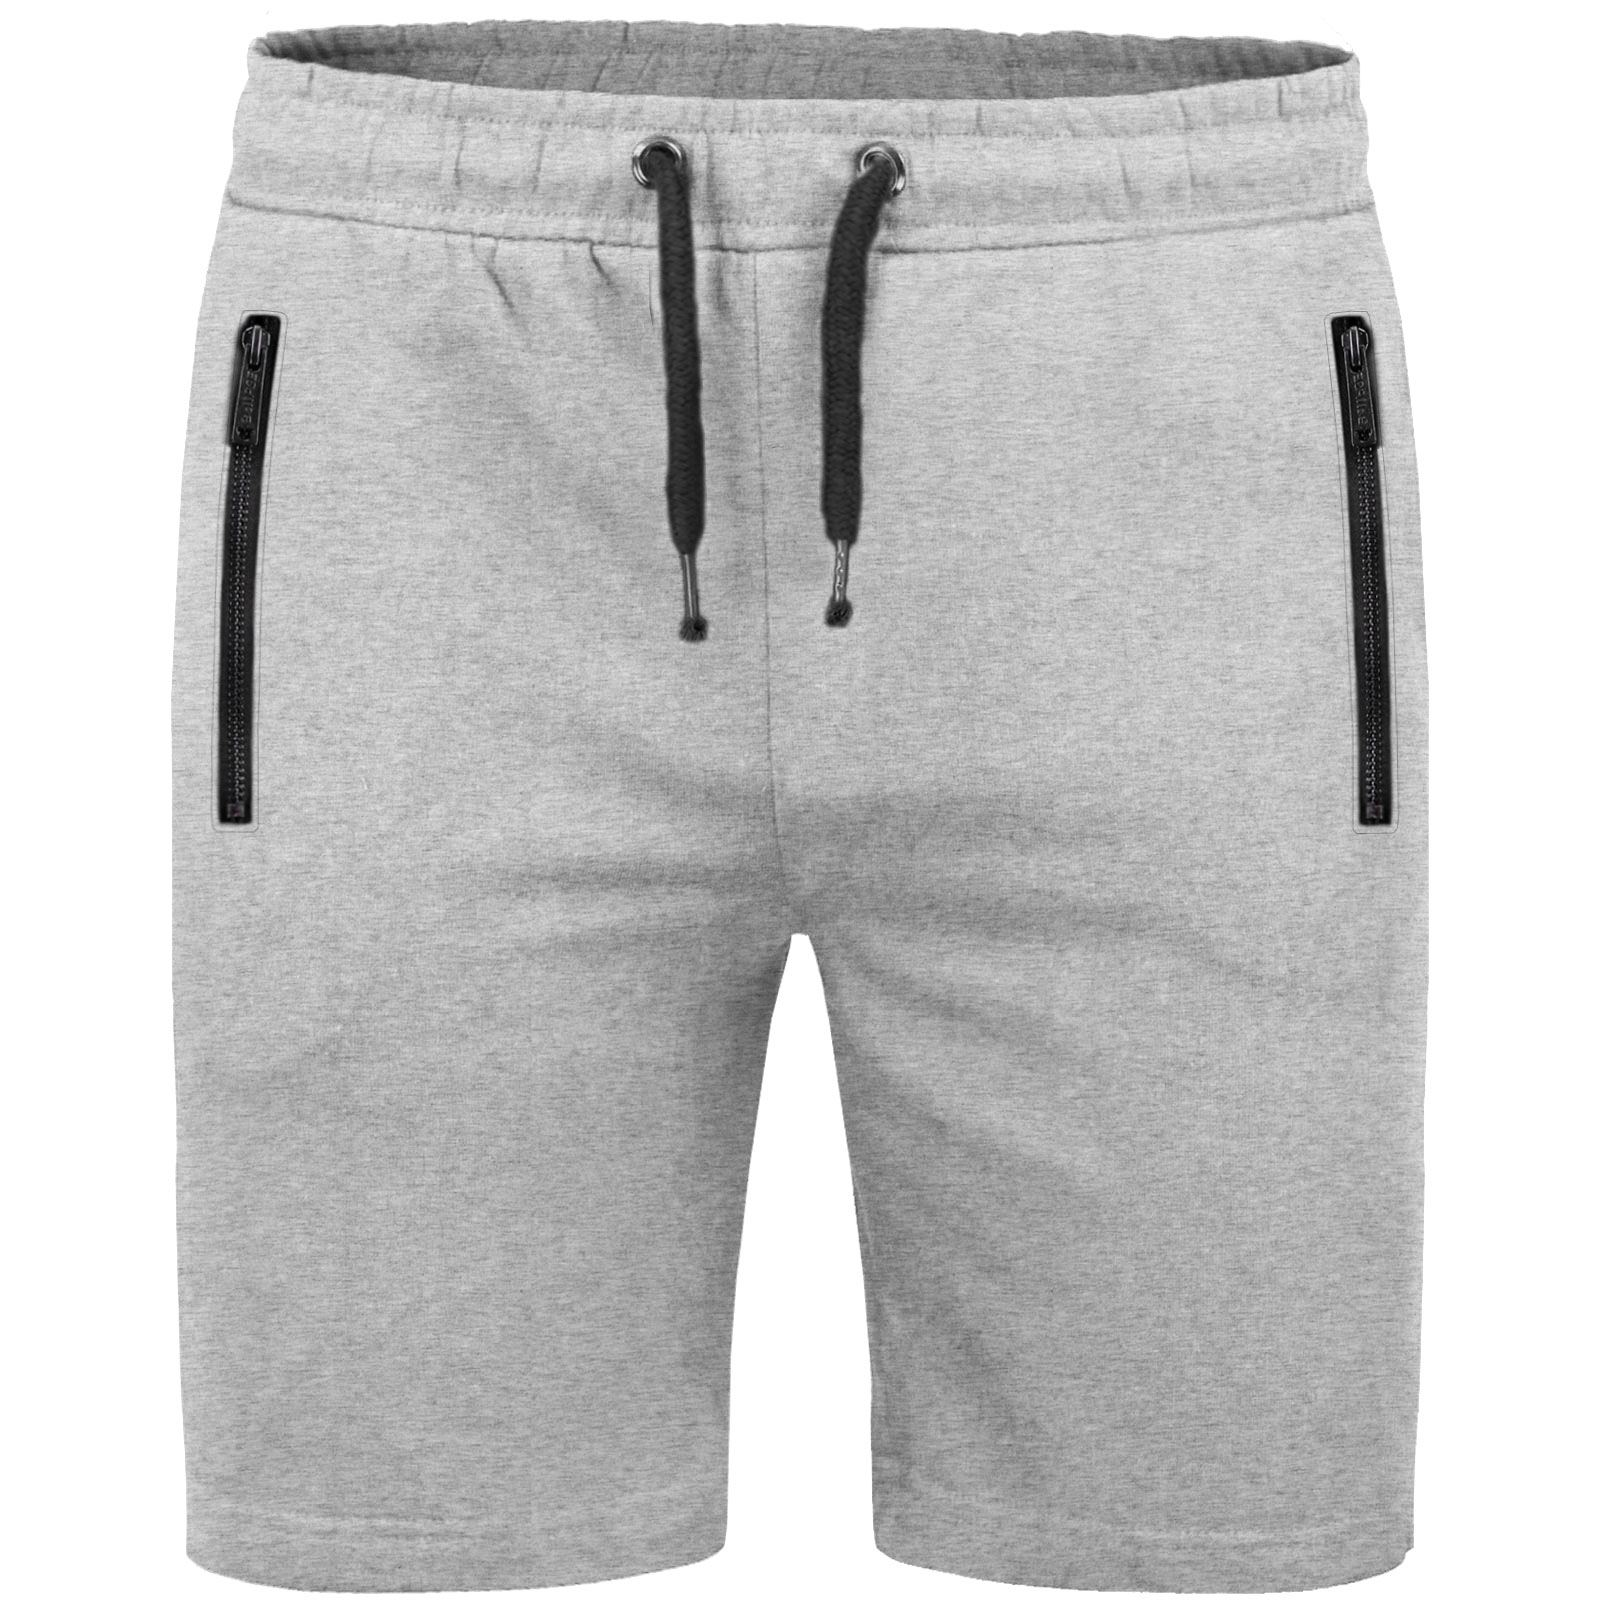 Men's Joggers & Sweatpants (27) Dial in the perfect look with men's joggers and sweatpants. Browse from a variety of fits, colors and materials to find the men's joggers that suit your sport and style. Sort By: Men's Pants. $ Prev.